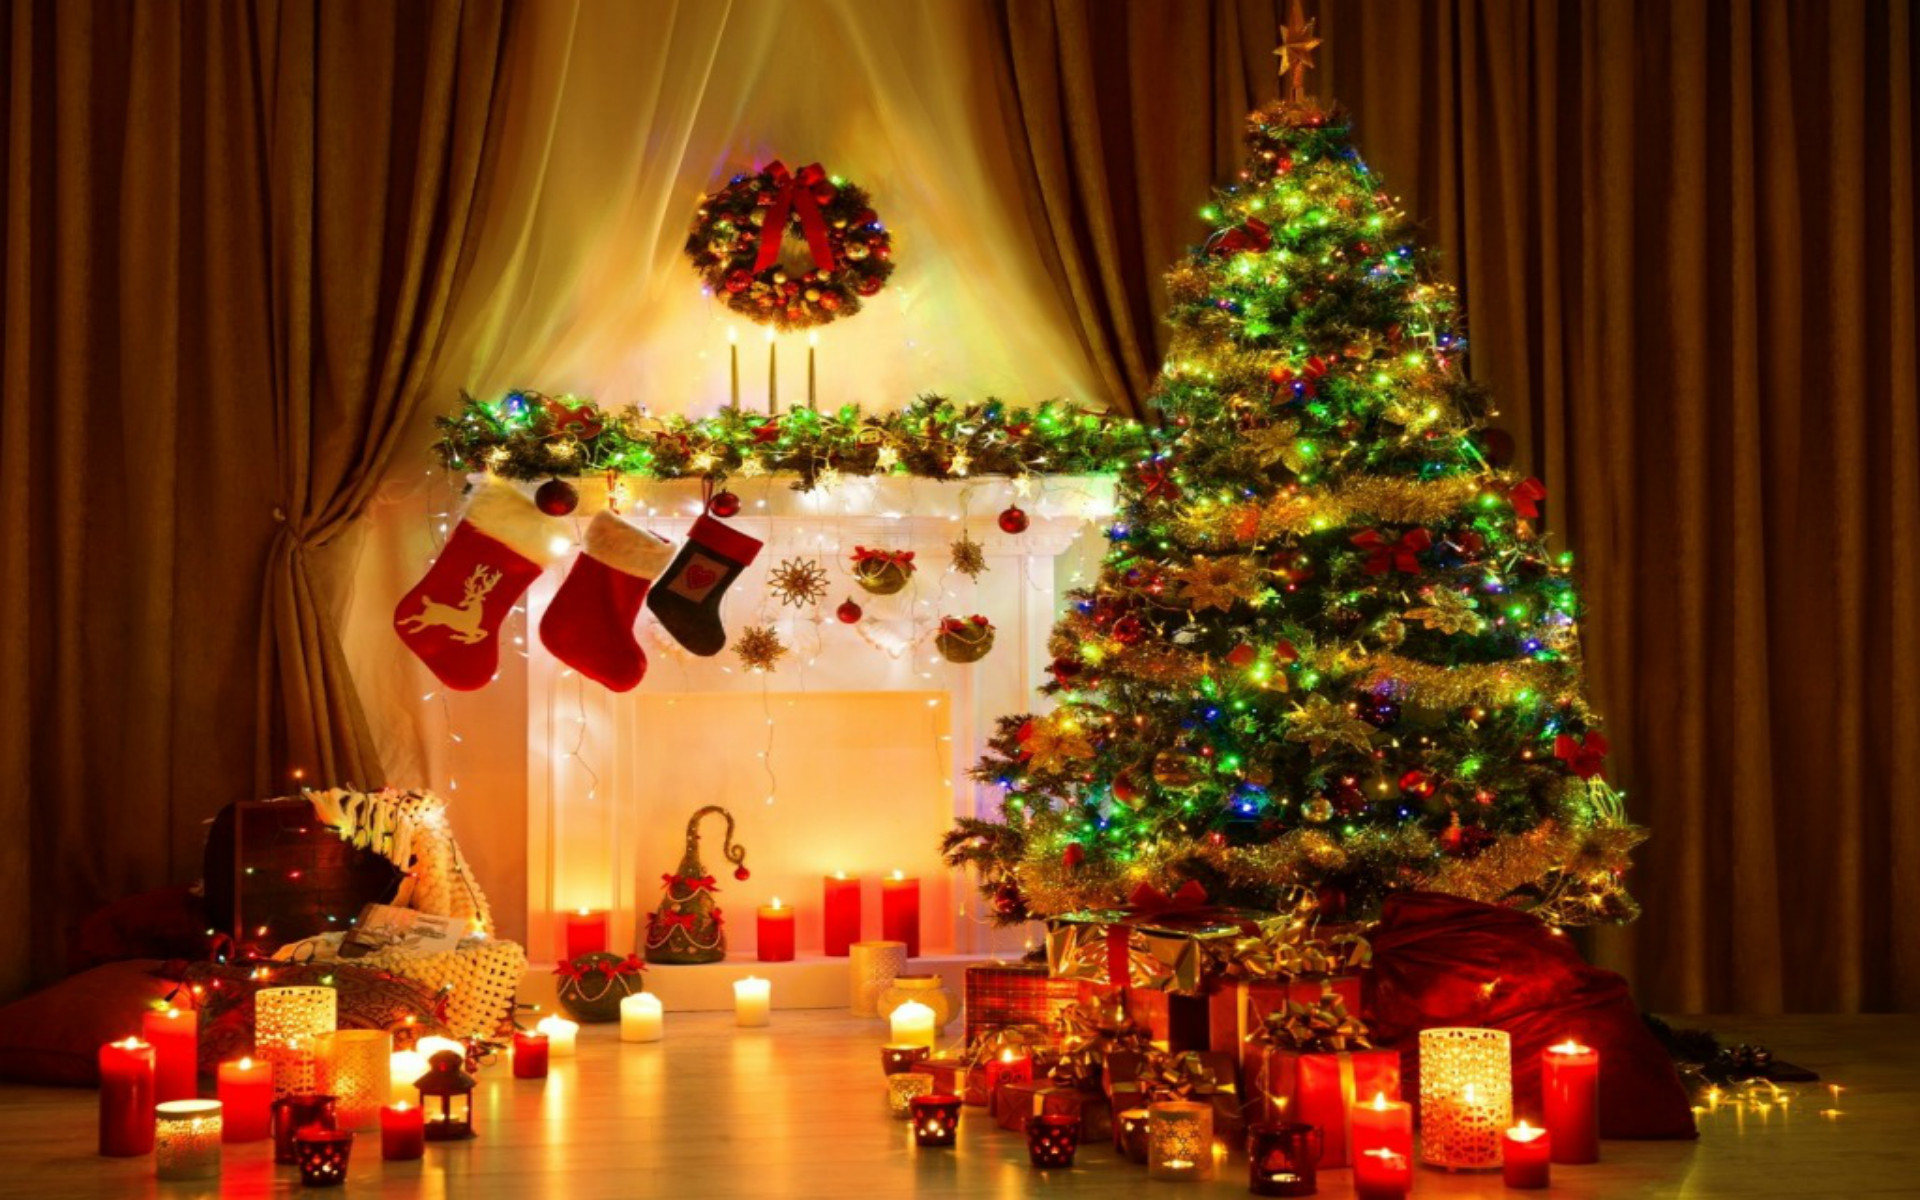 Top 24 Best Free Hd Christmas Wallpapers: Christmas Tree Desktop Background (74+ Images